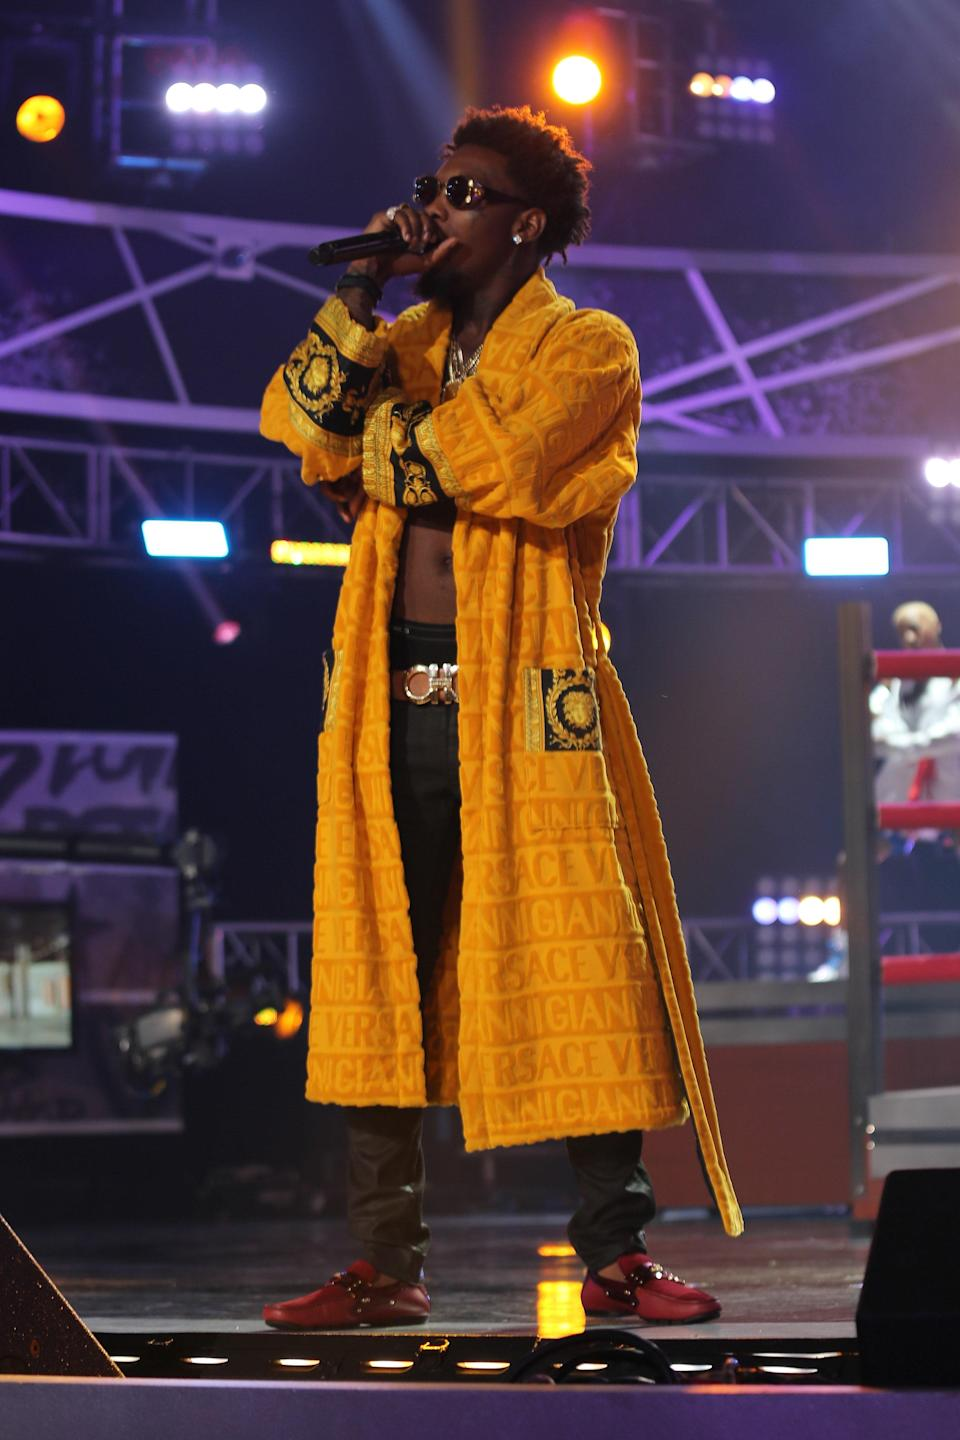 Offset performs with Migos at the BET Hip Hop Awards in Atlanta, September 20, 2014.